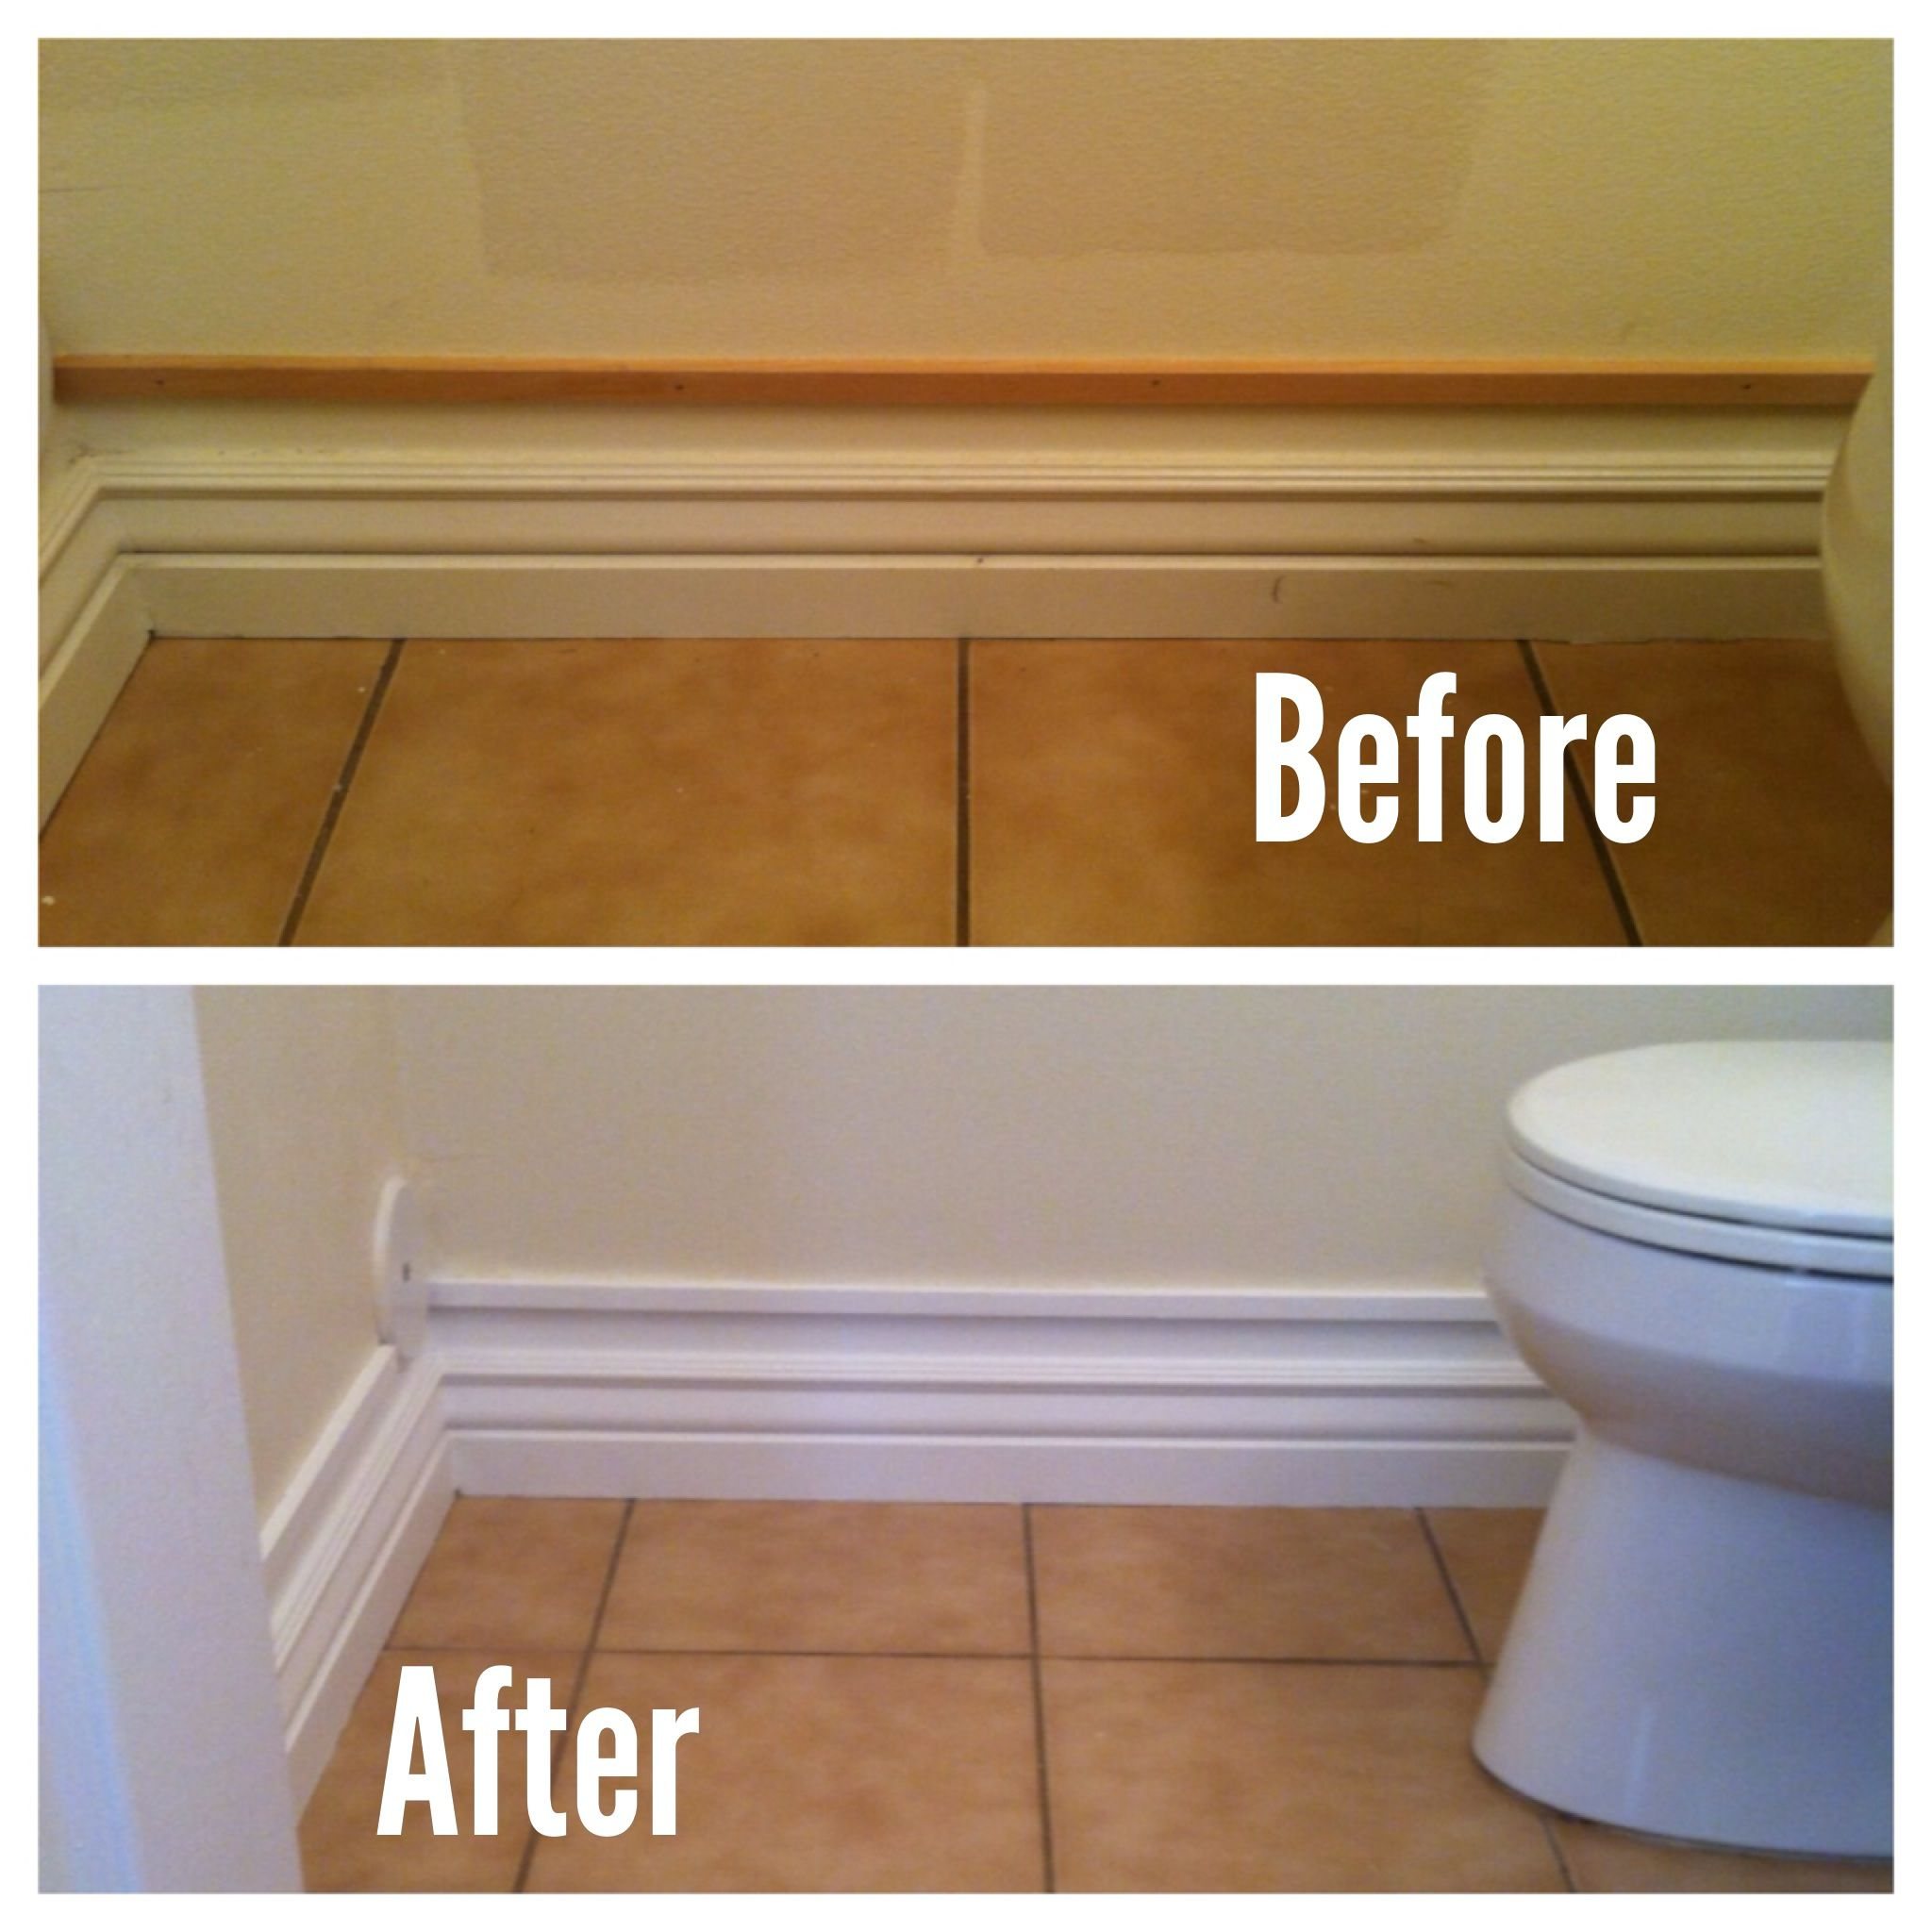 4.5 Inch Baseboard To 7 Inch Baseboard. A Small Piece Of Trim And White Paint! Excited To Do